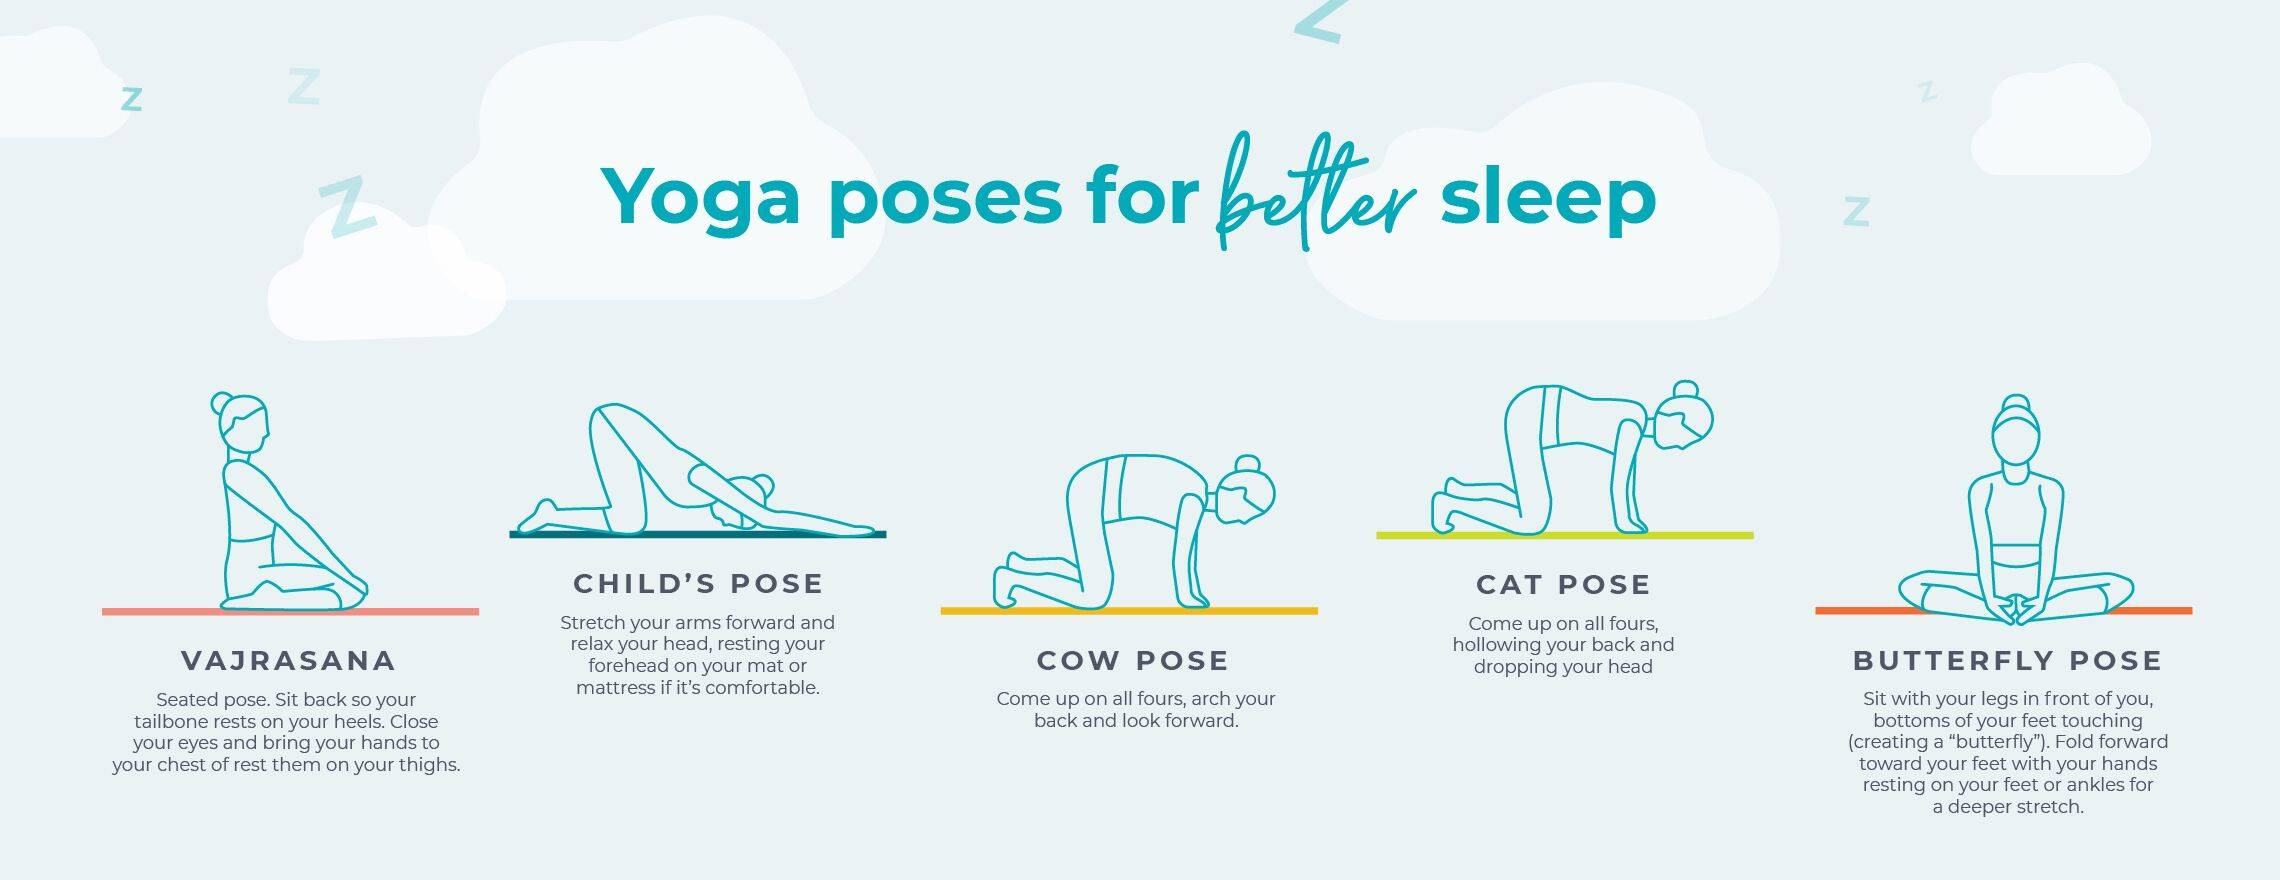 Benefits of Yoga Before Bed: Relaxation & Better Rest  Leesa